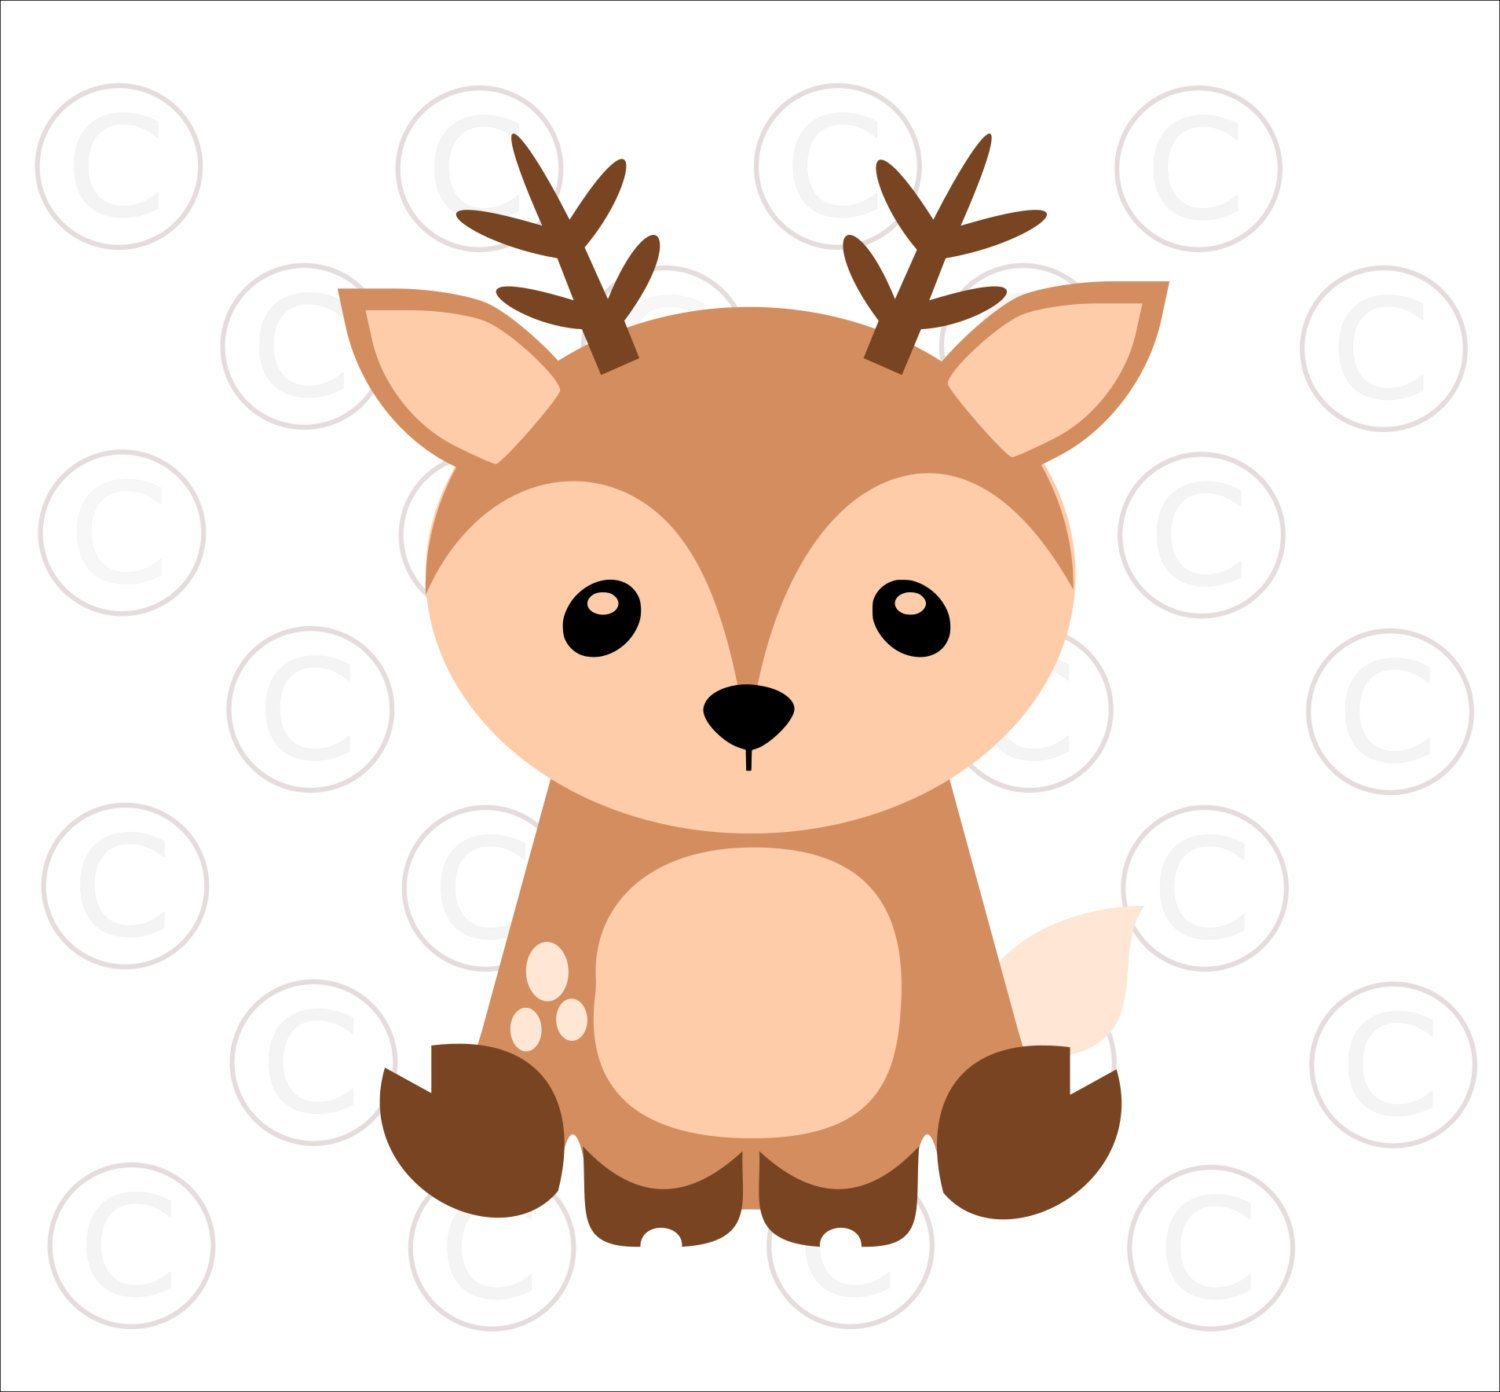 1500x1392 Baby Woodland Animal Svgs, Baby Deer Cut Files, Woodland Animal